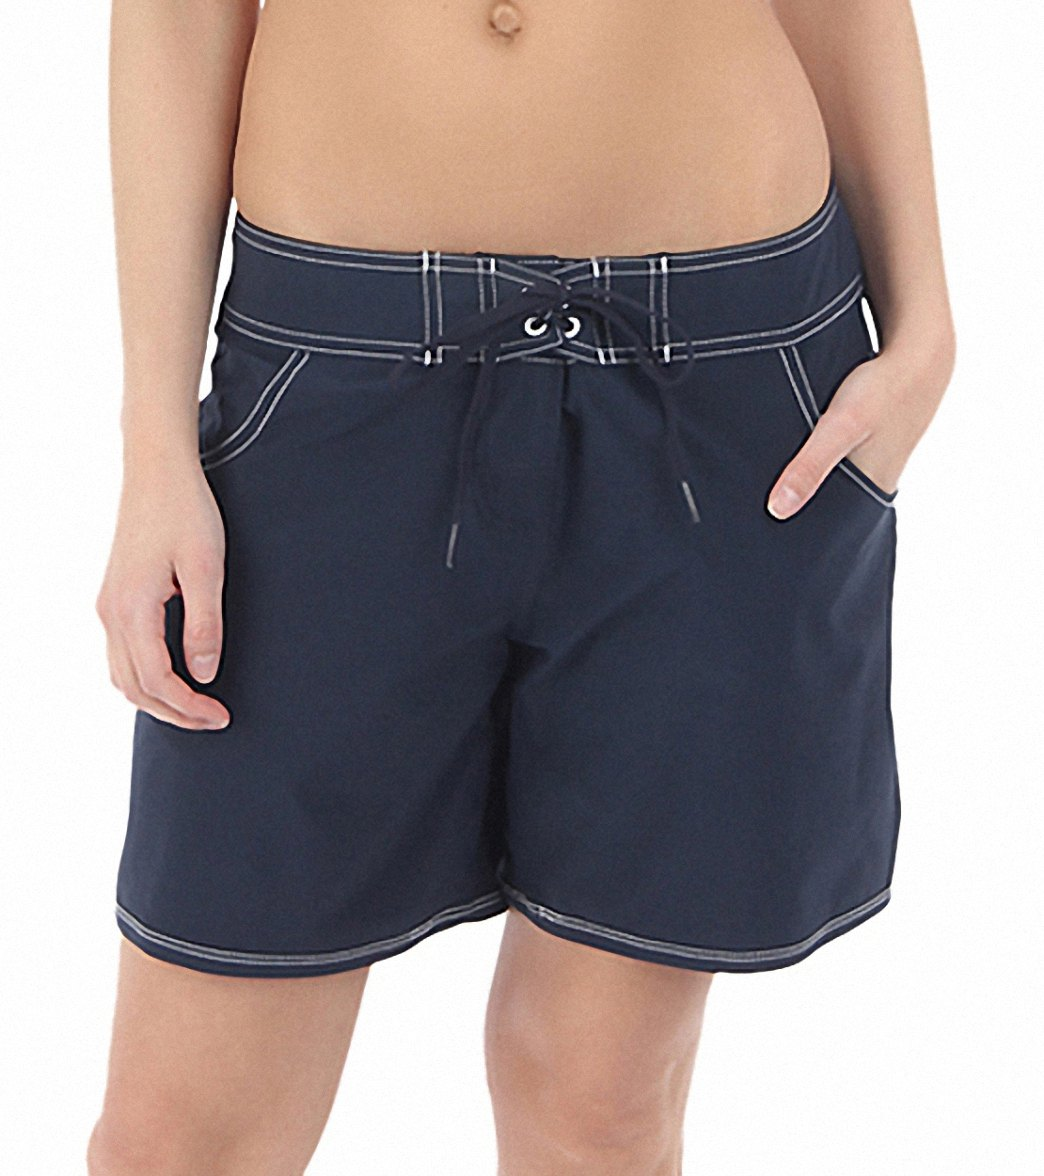 b6b502f870 Seafolly Women's Barracuda Mid Length Boardshort at SwimOutlet.com - Free  Shipping